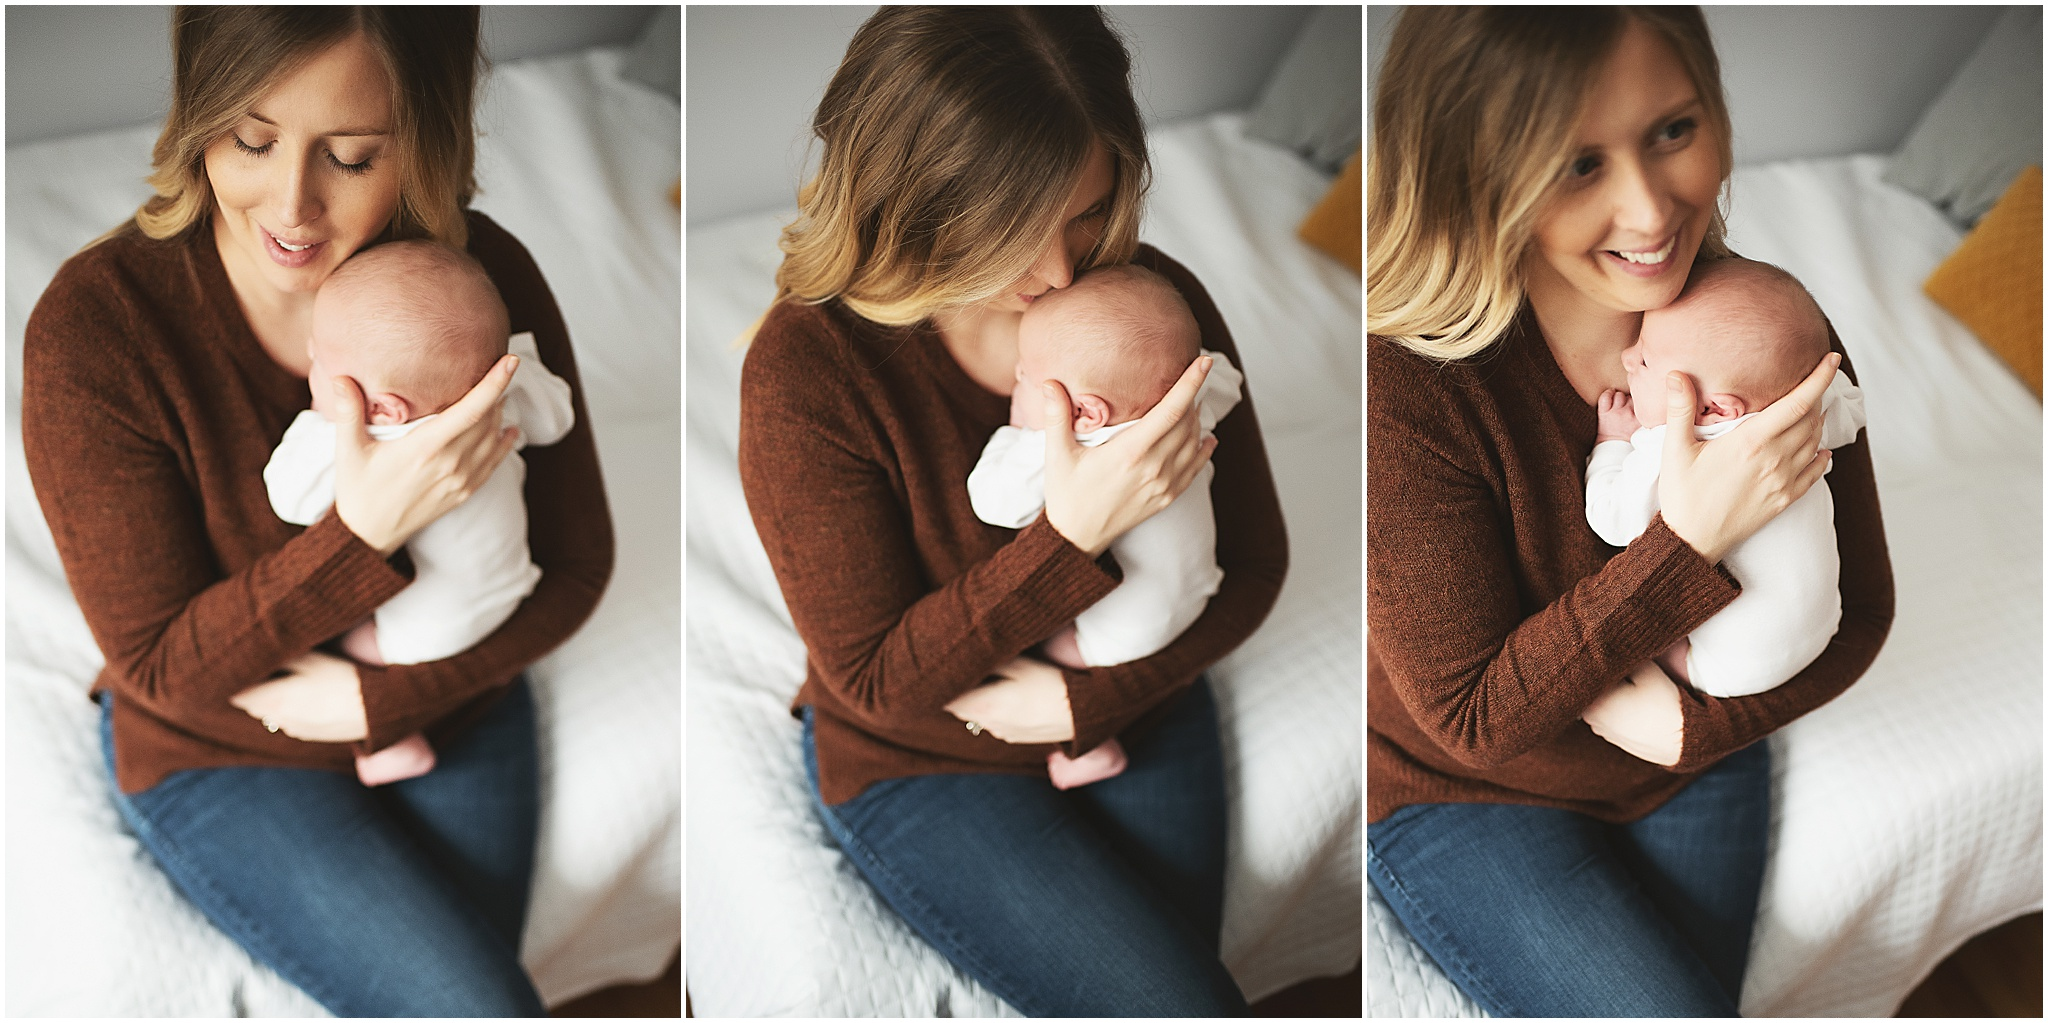 karra lynn photography - newborn photographer northville mi - mom soothing newborn